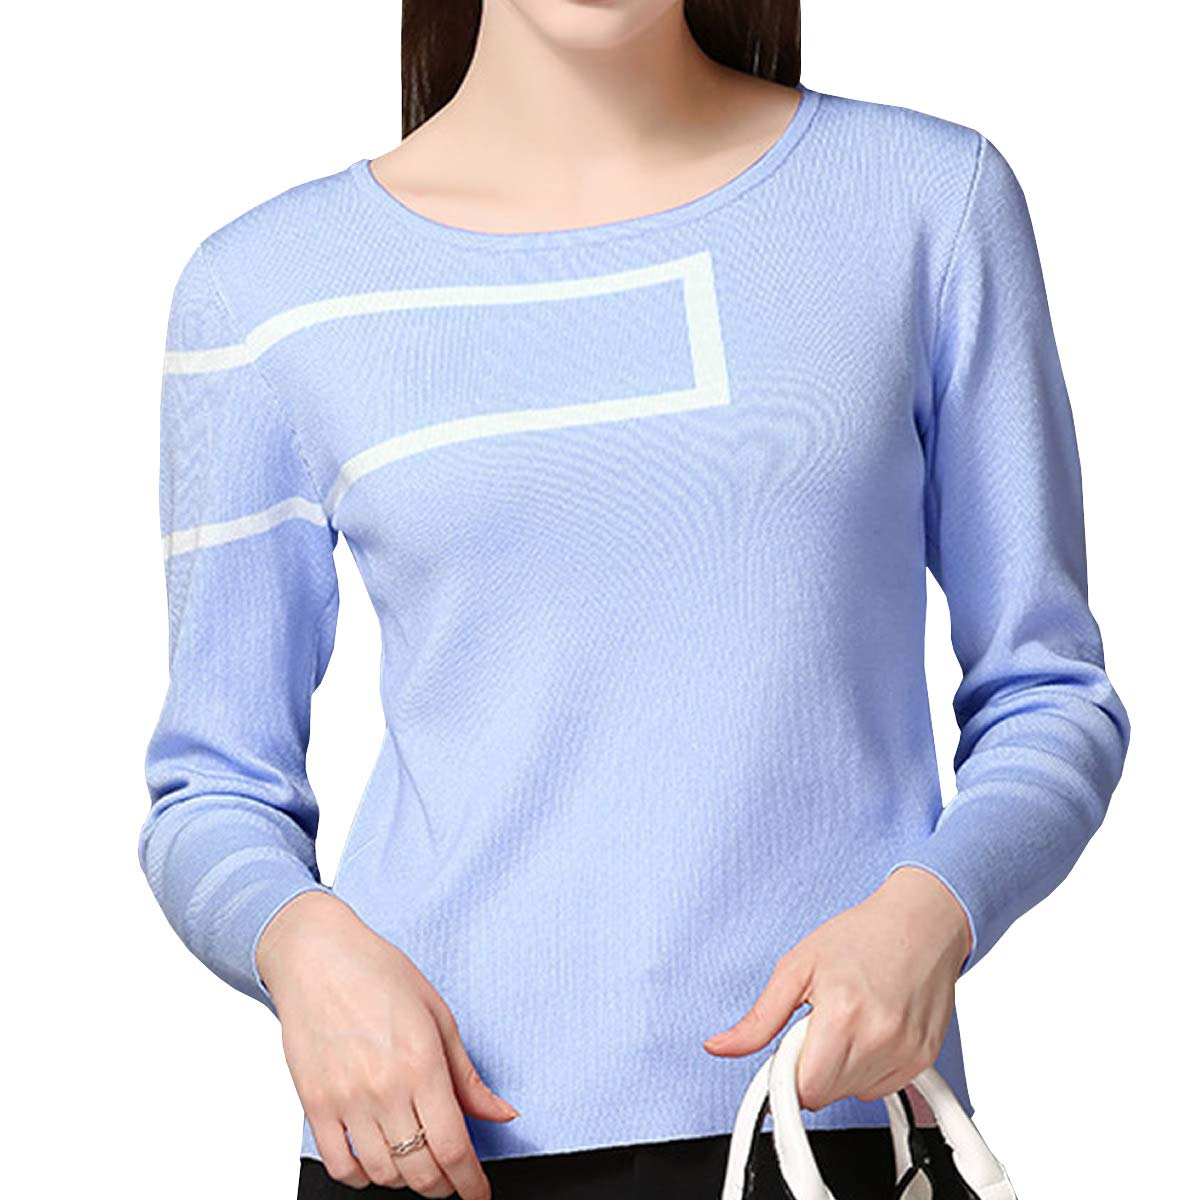 DISSA S7619789 Women Long Sleeve Solid Coloured Slim Top Pullover Knitwear Sweater